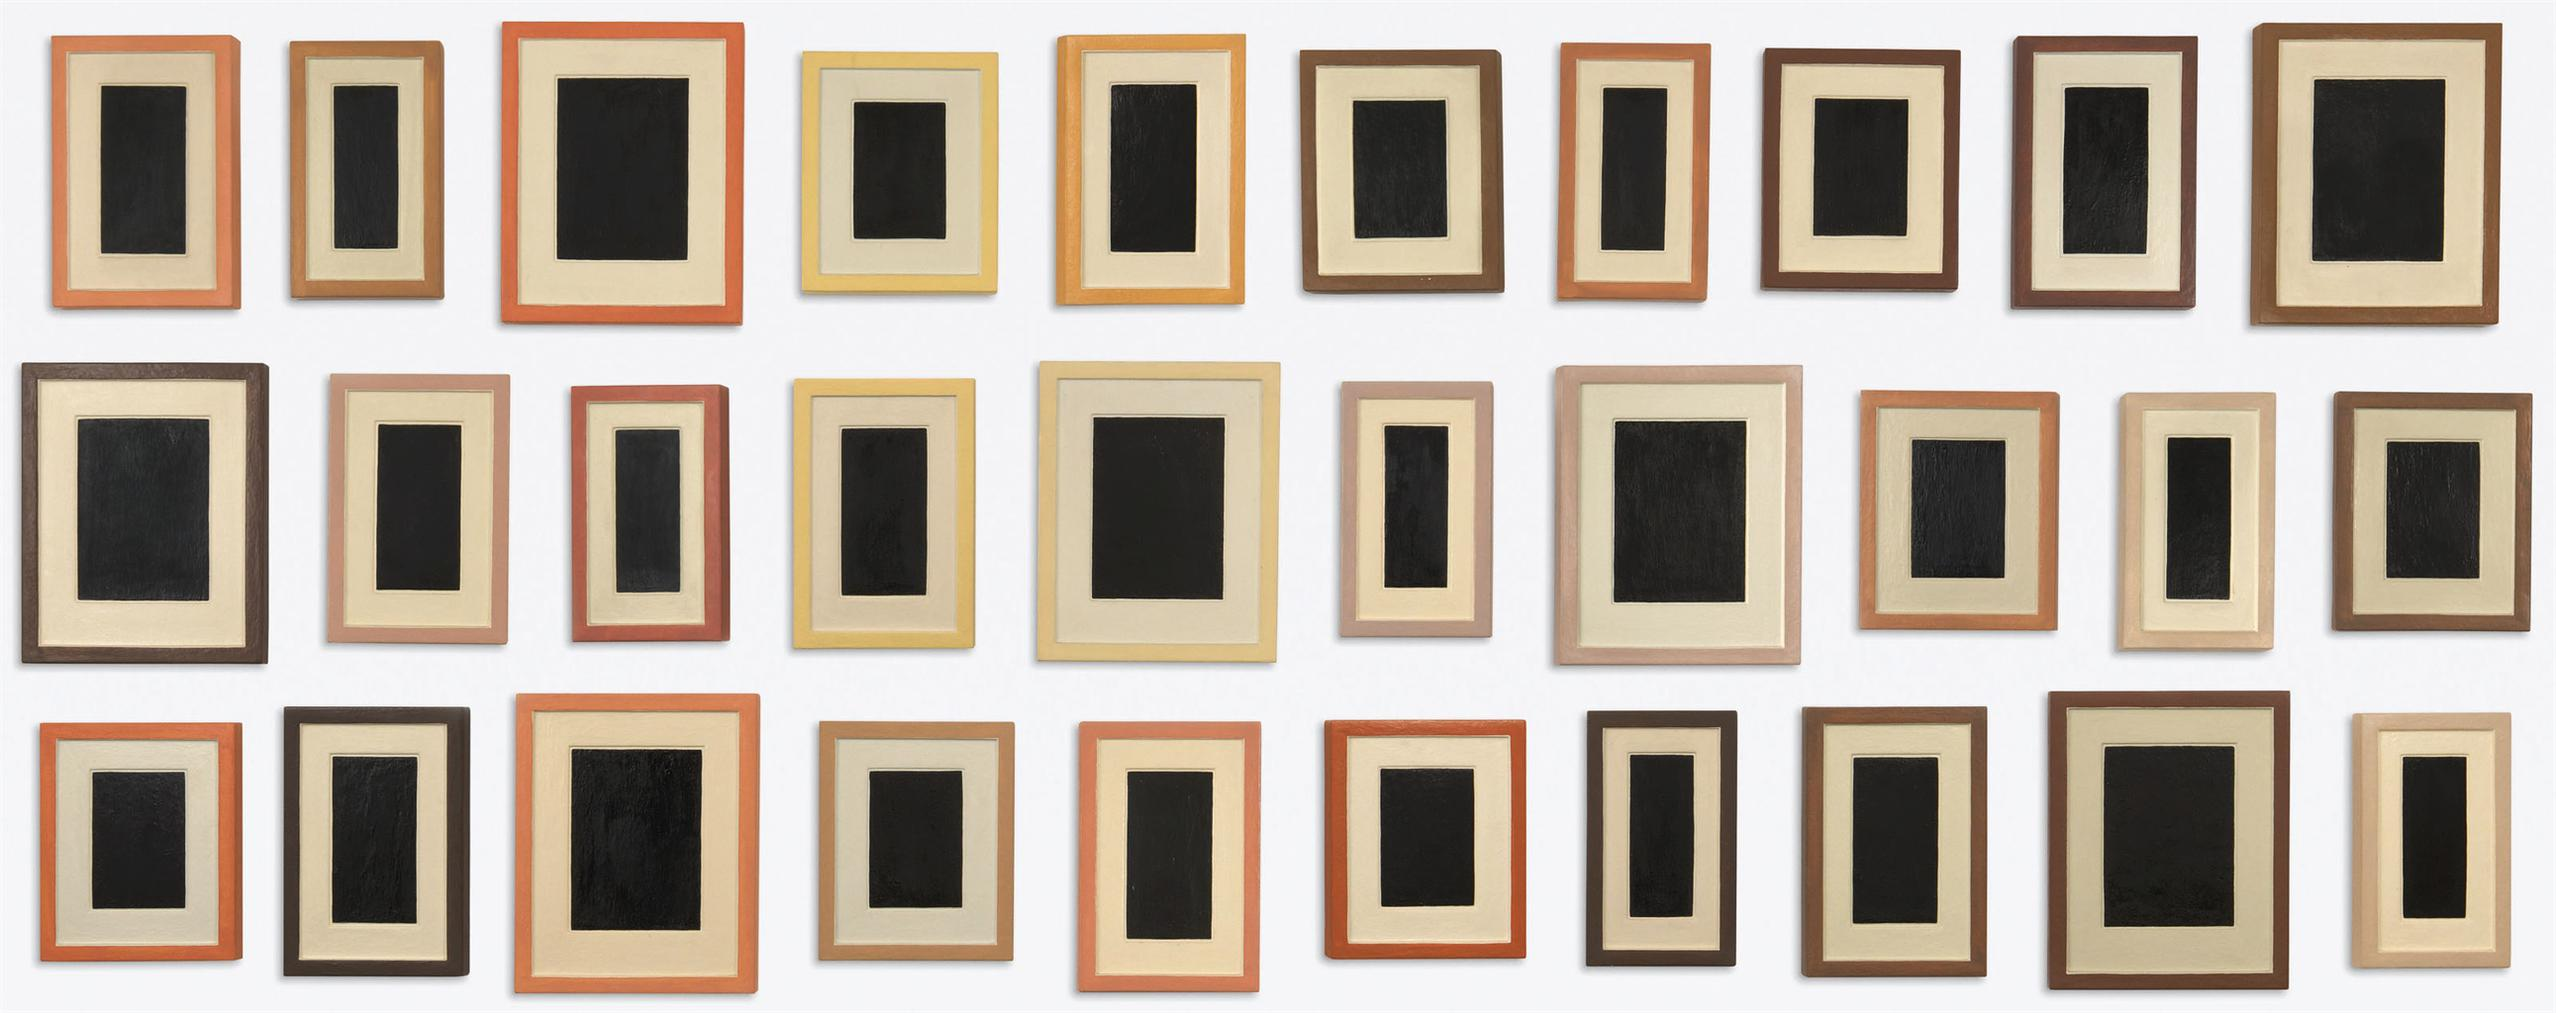 Allan McCollum-Collection Of Thirty Plaster Surrogates-1990